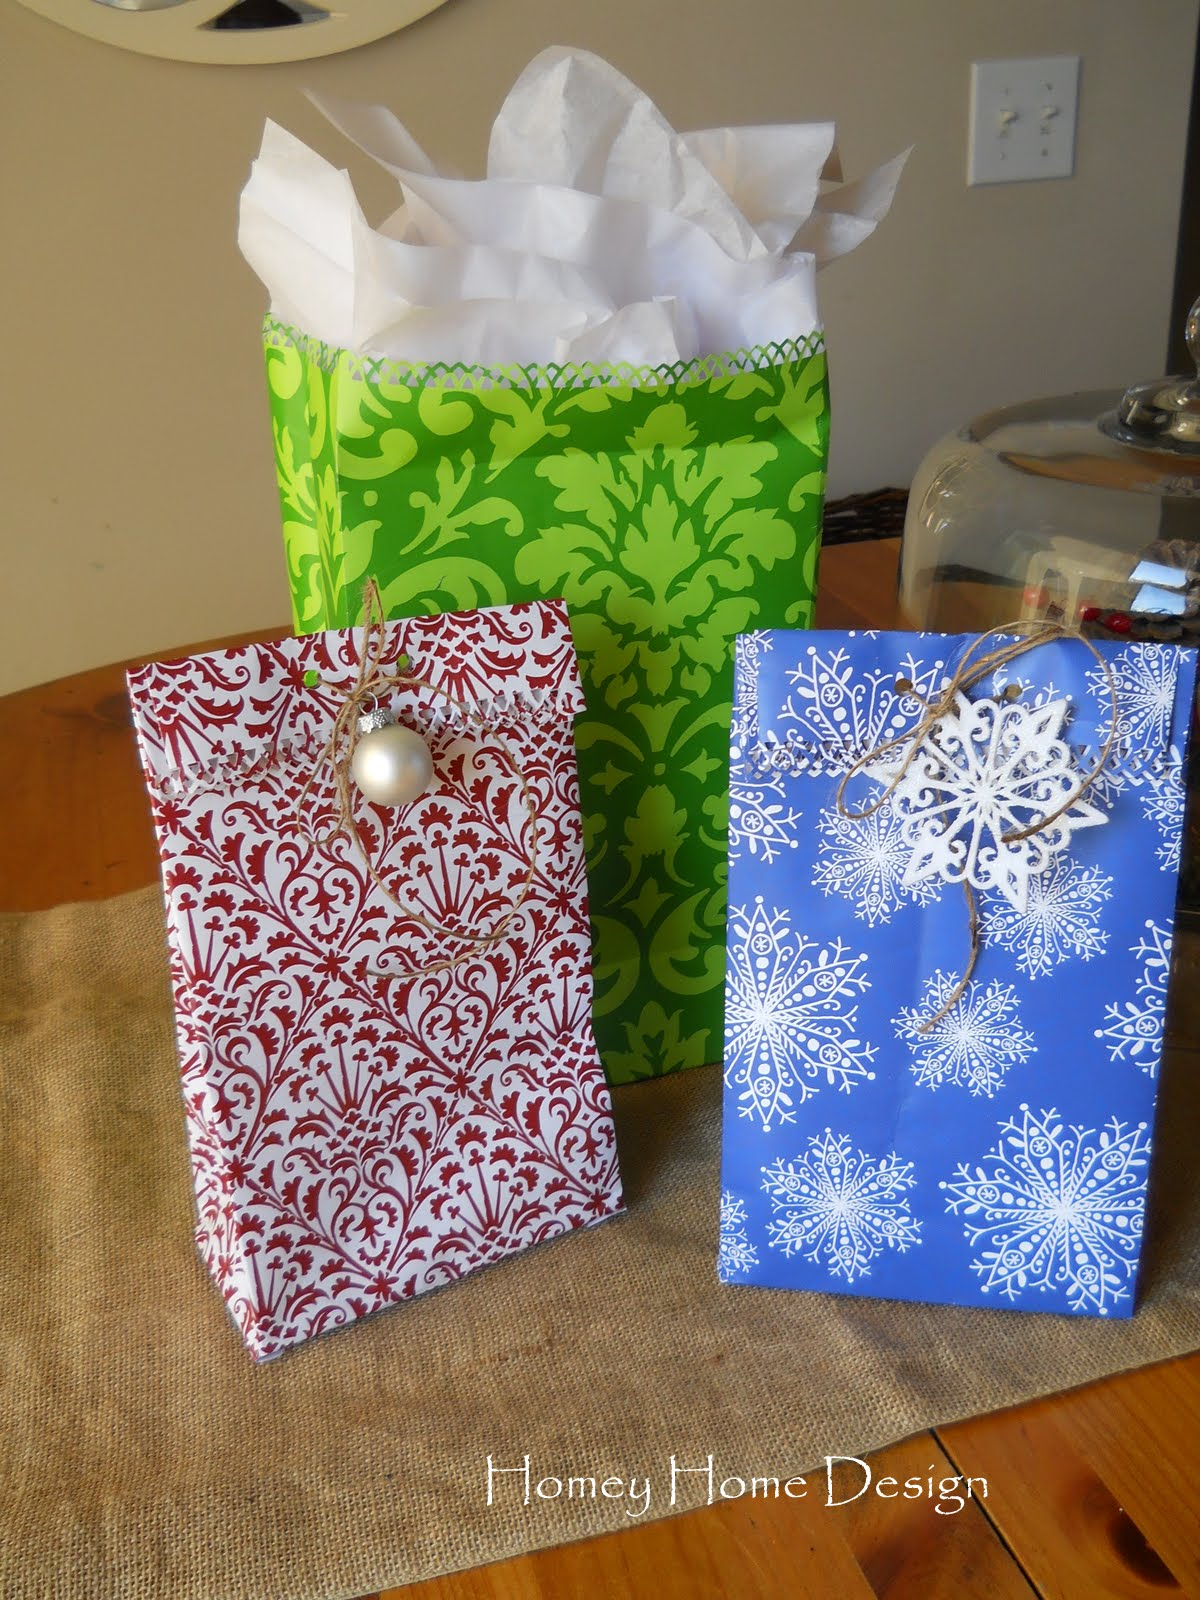 Homey home design how to make gift bags out of wrapping paper for How to wrap presents with wrapping paper